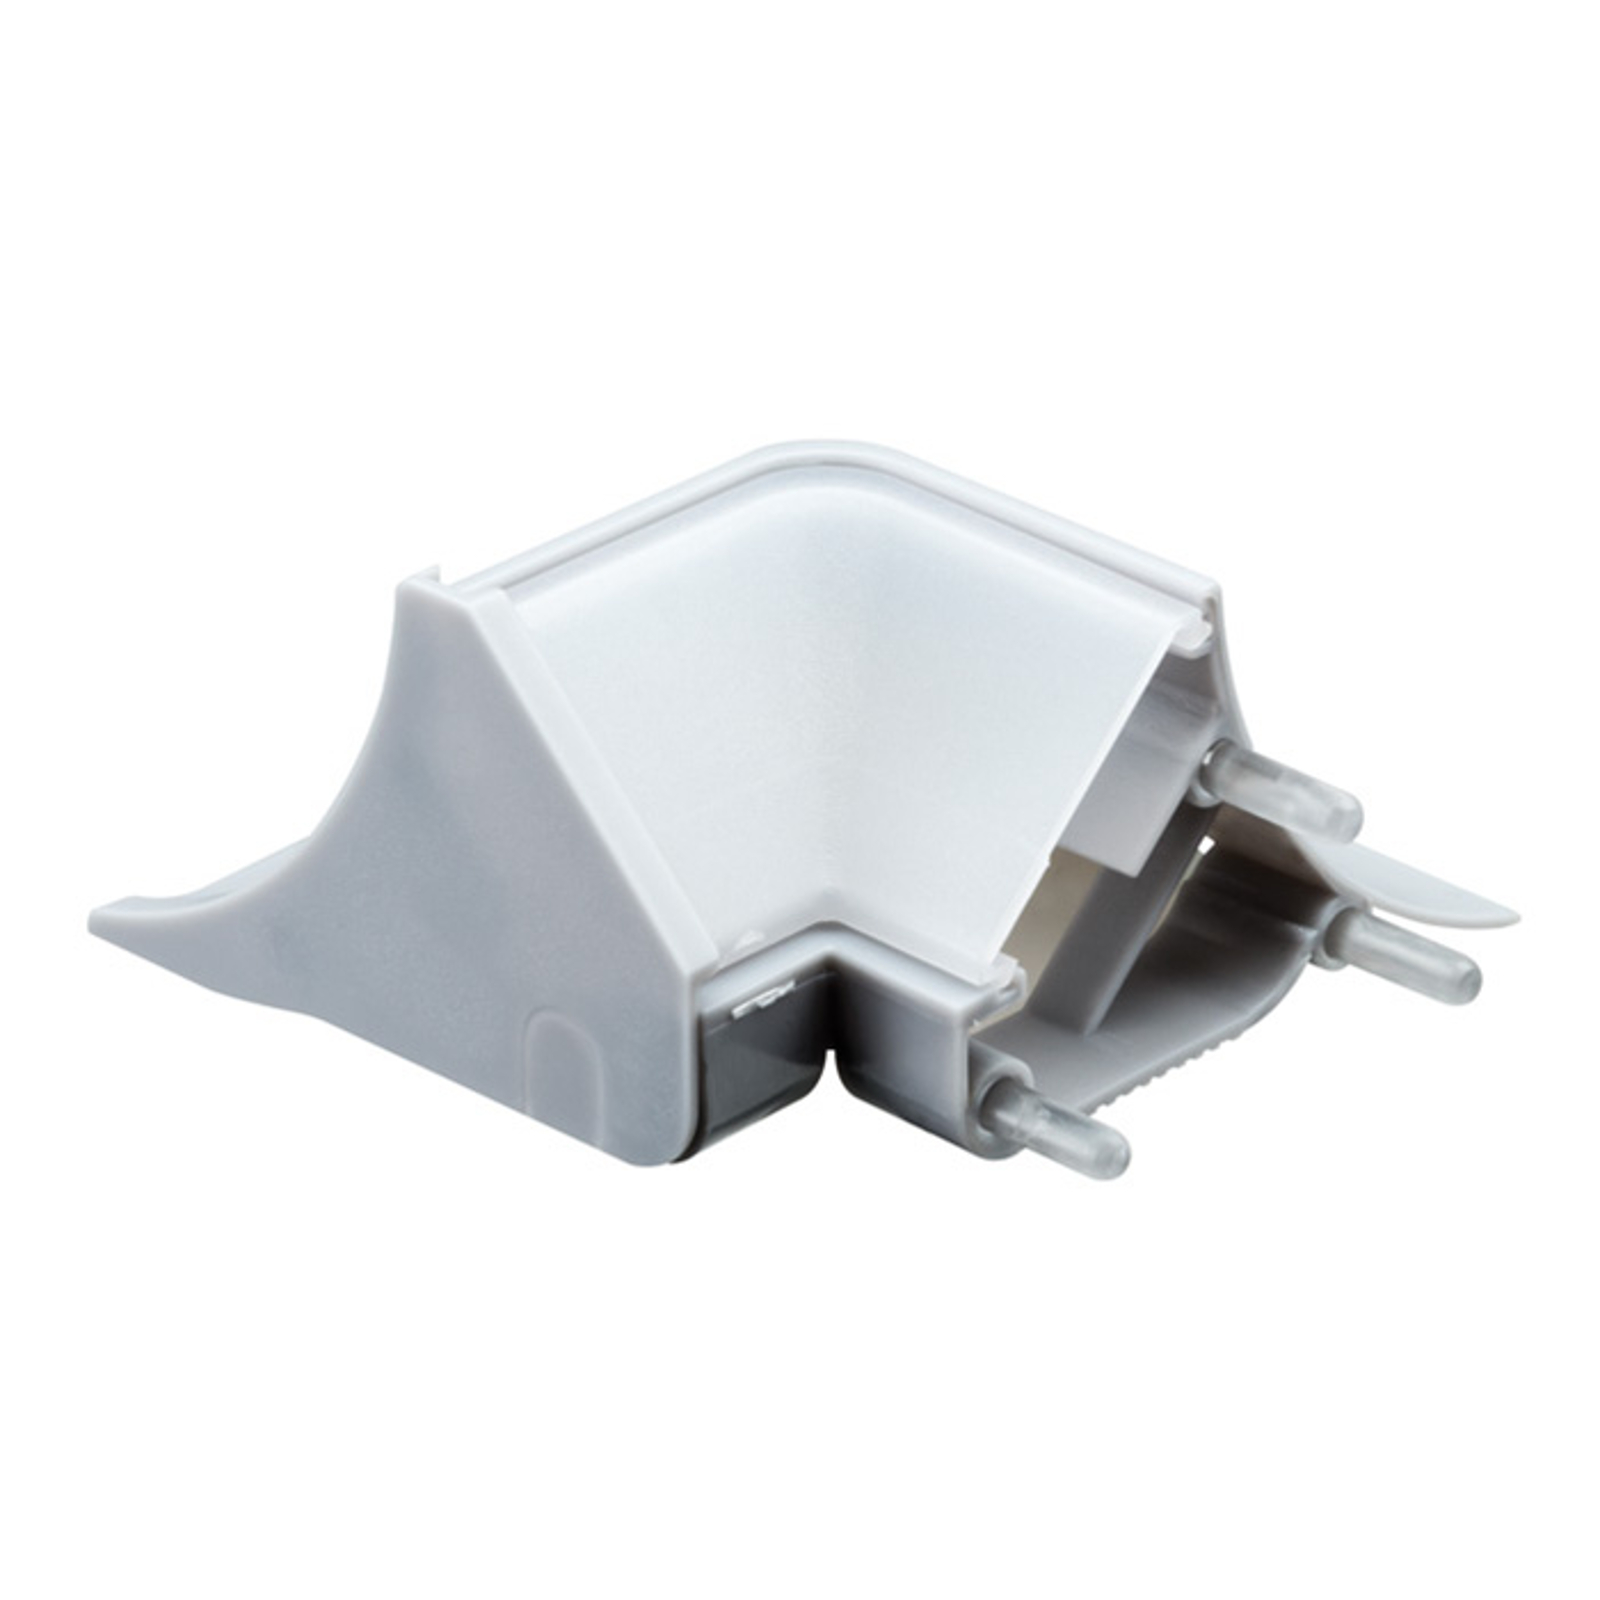 Profil d'angle Edge pour bandes YourLED